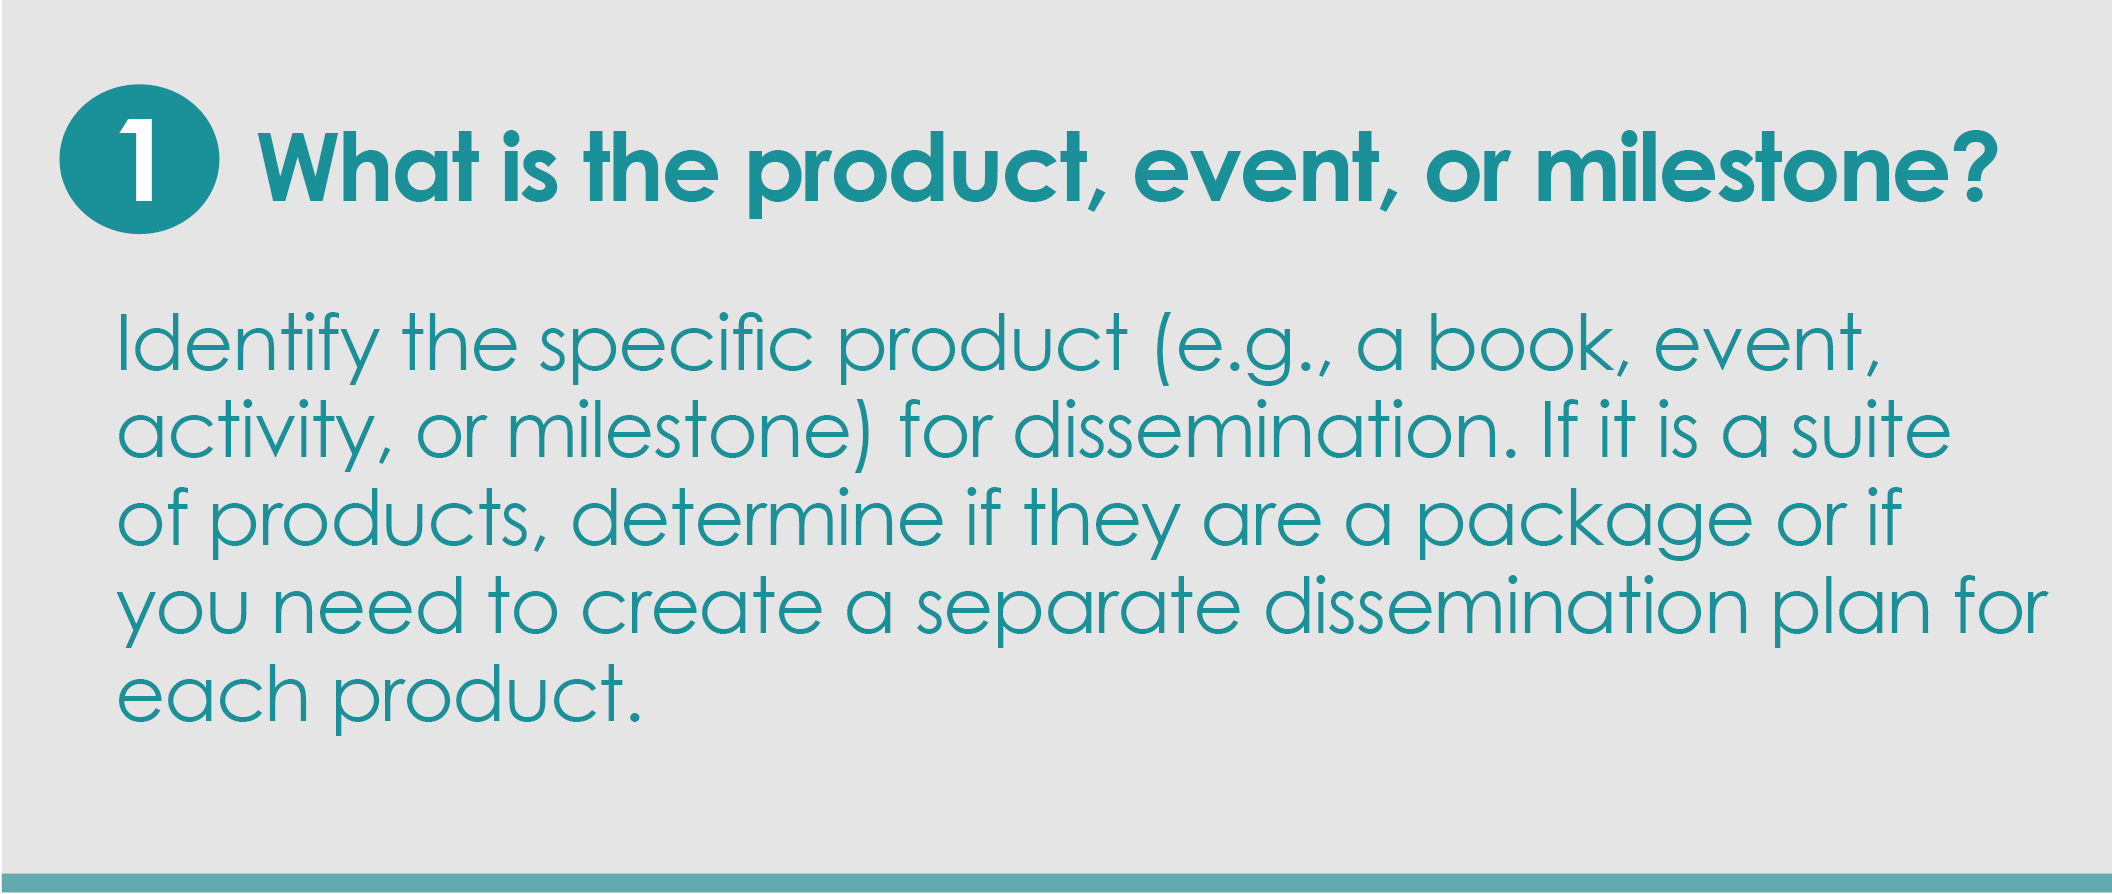 Step 1: What is the product, event, or milestone? Identify the specific product (e.g., a book, event, activity, or milestone) you are focusing on. If it is a suite of products, determine if they are a package or if you need to create a separate dissemination plan for each product.